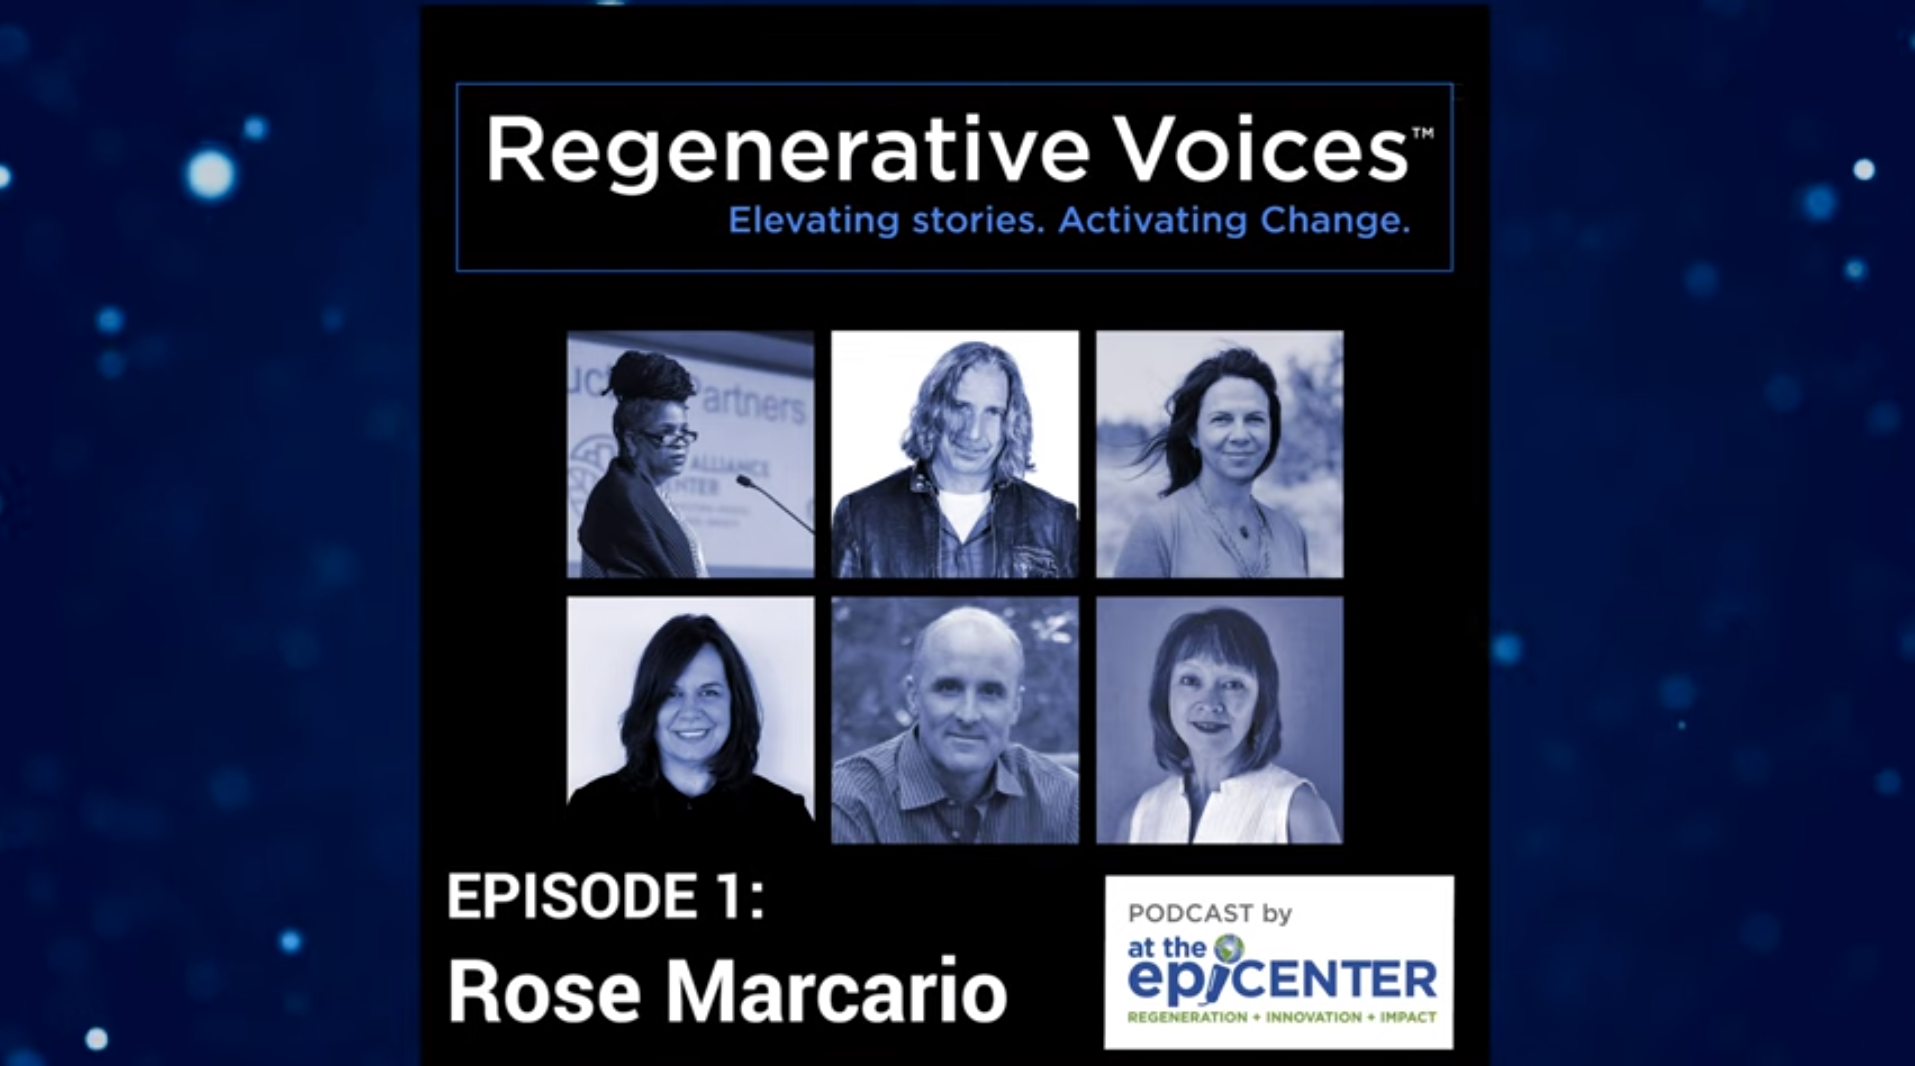 regenerative-voices-podcast-patagonia.png